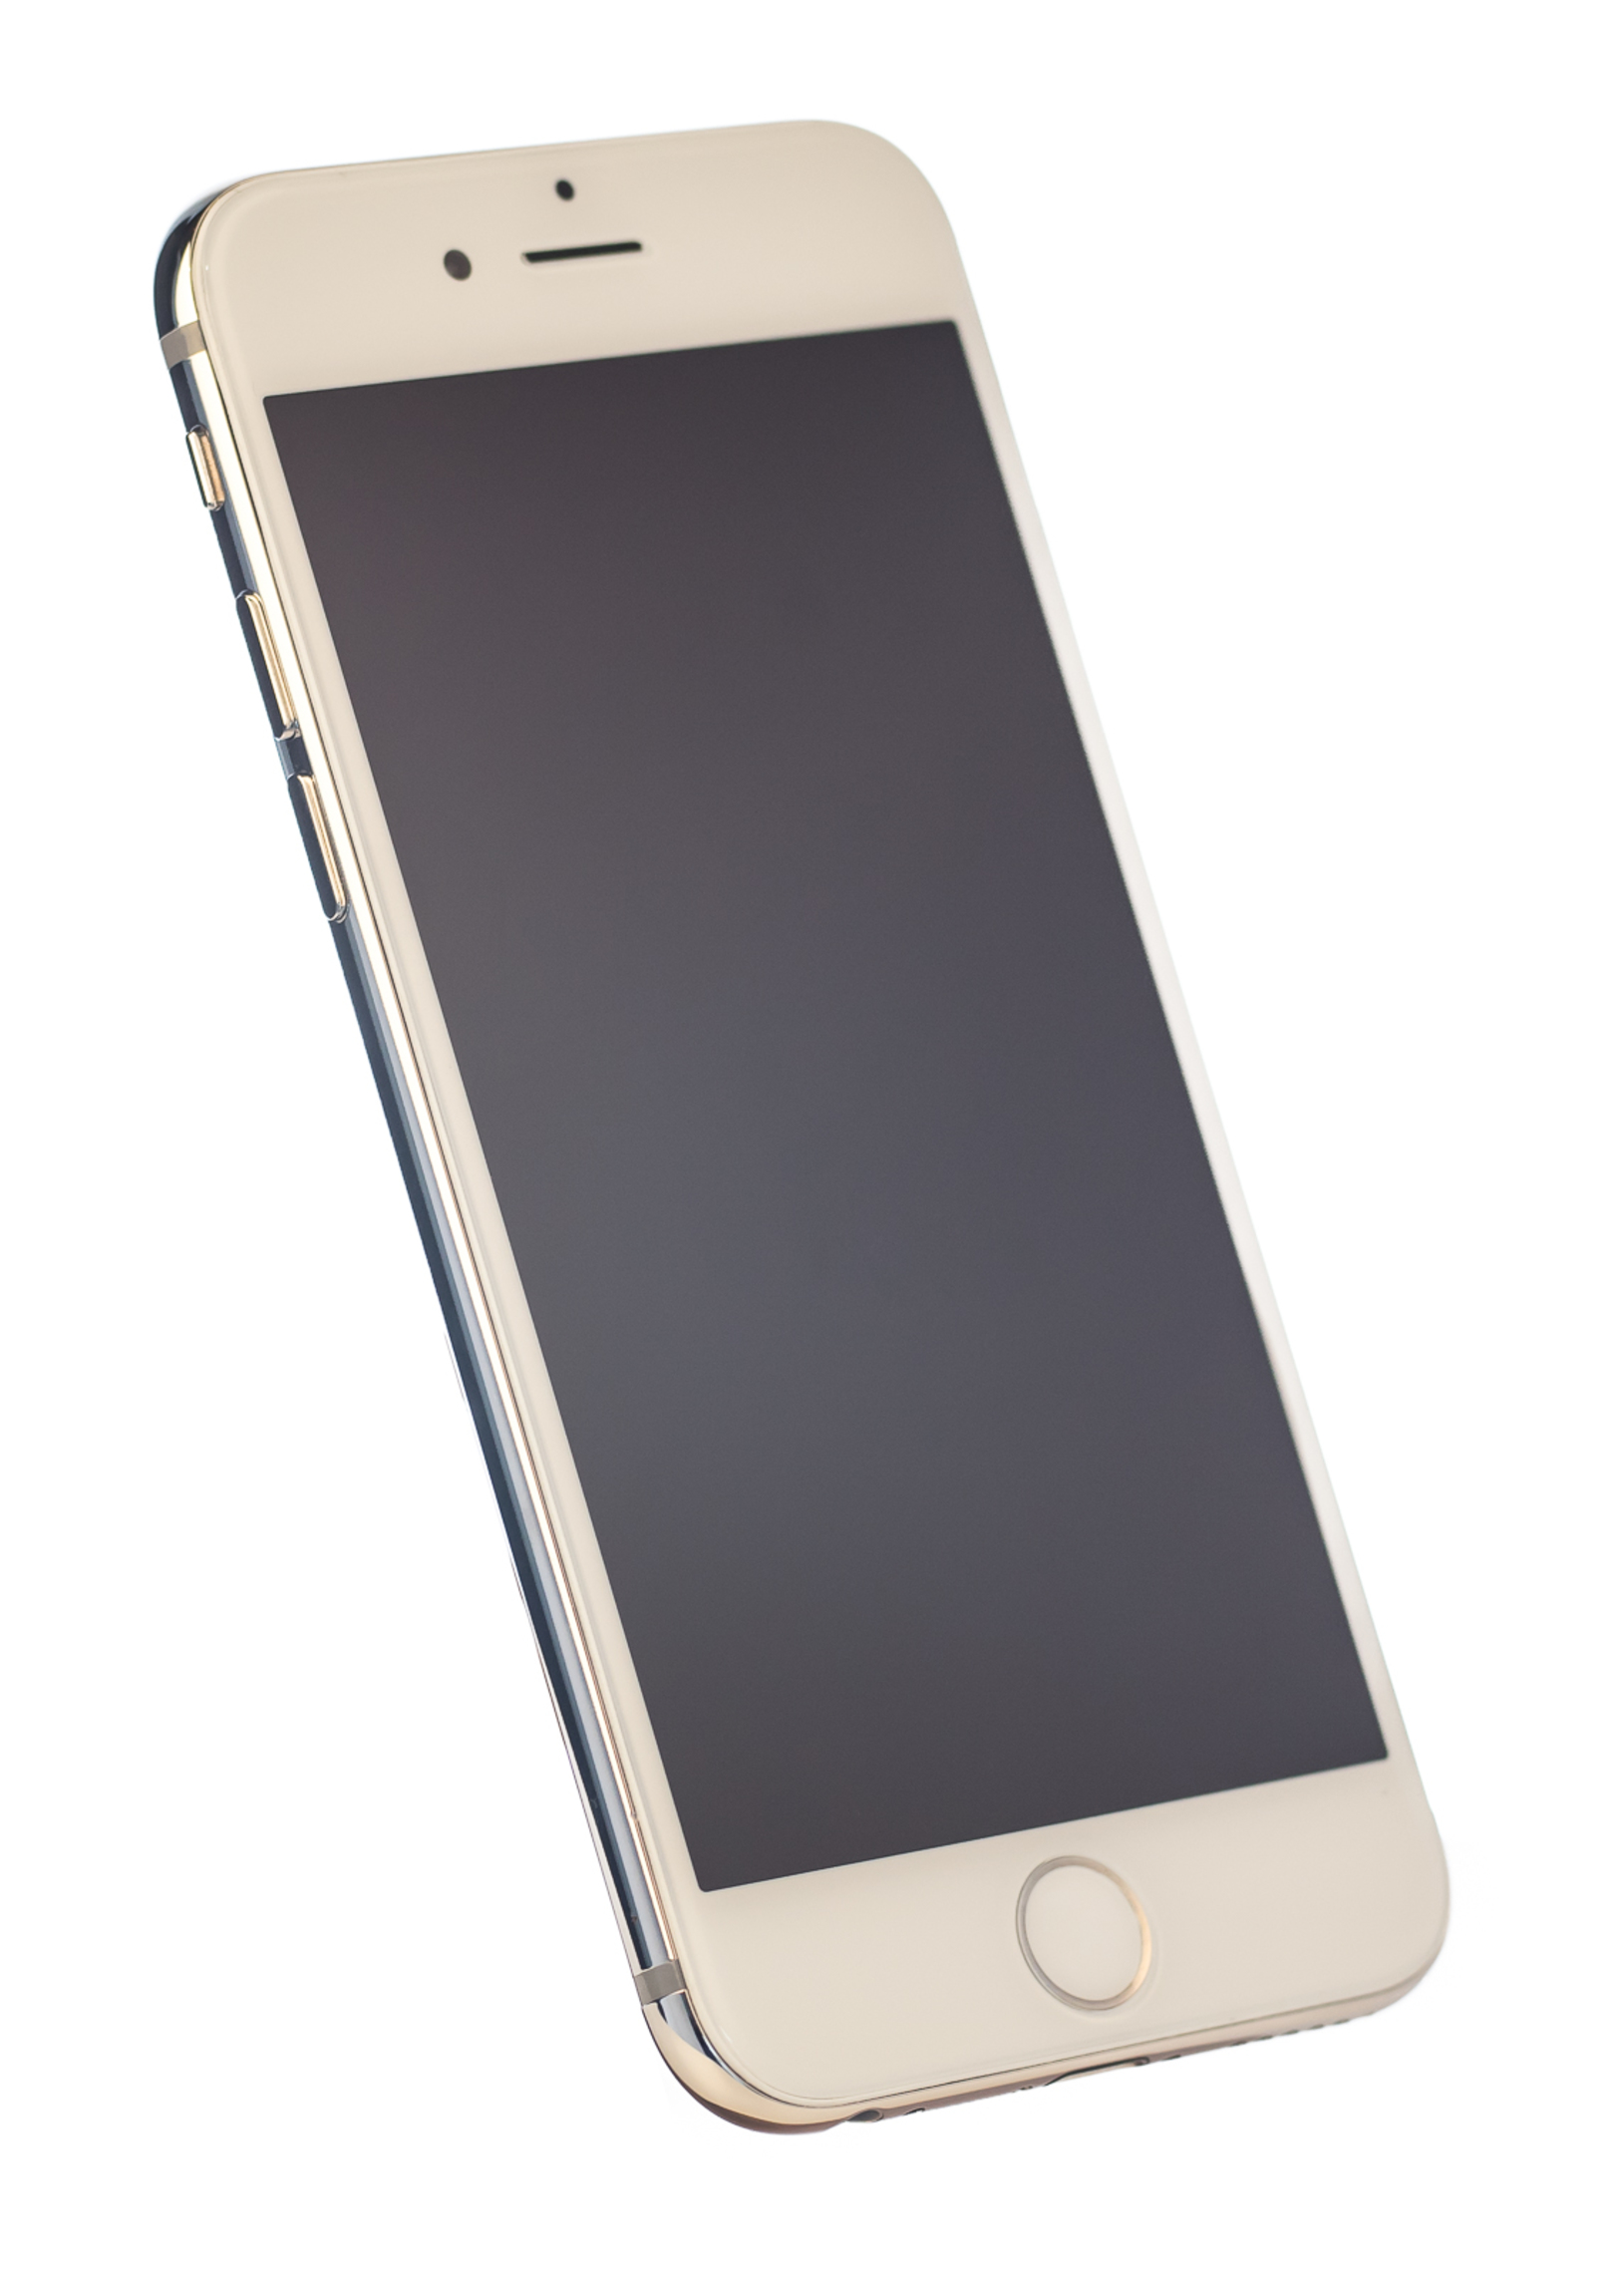 950 Platinum iPhone 6s (By Julian Monroe London)